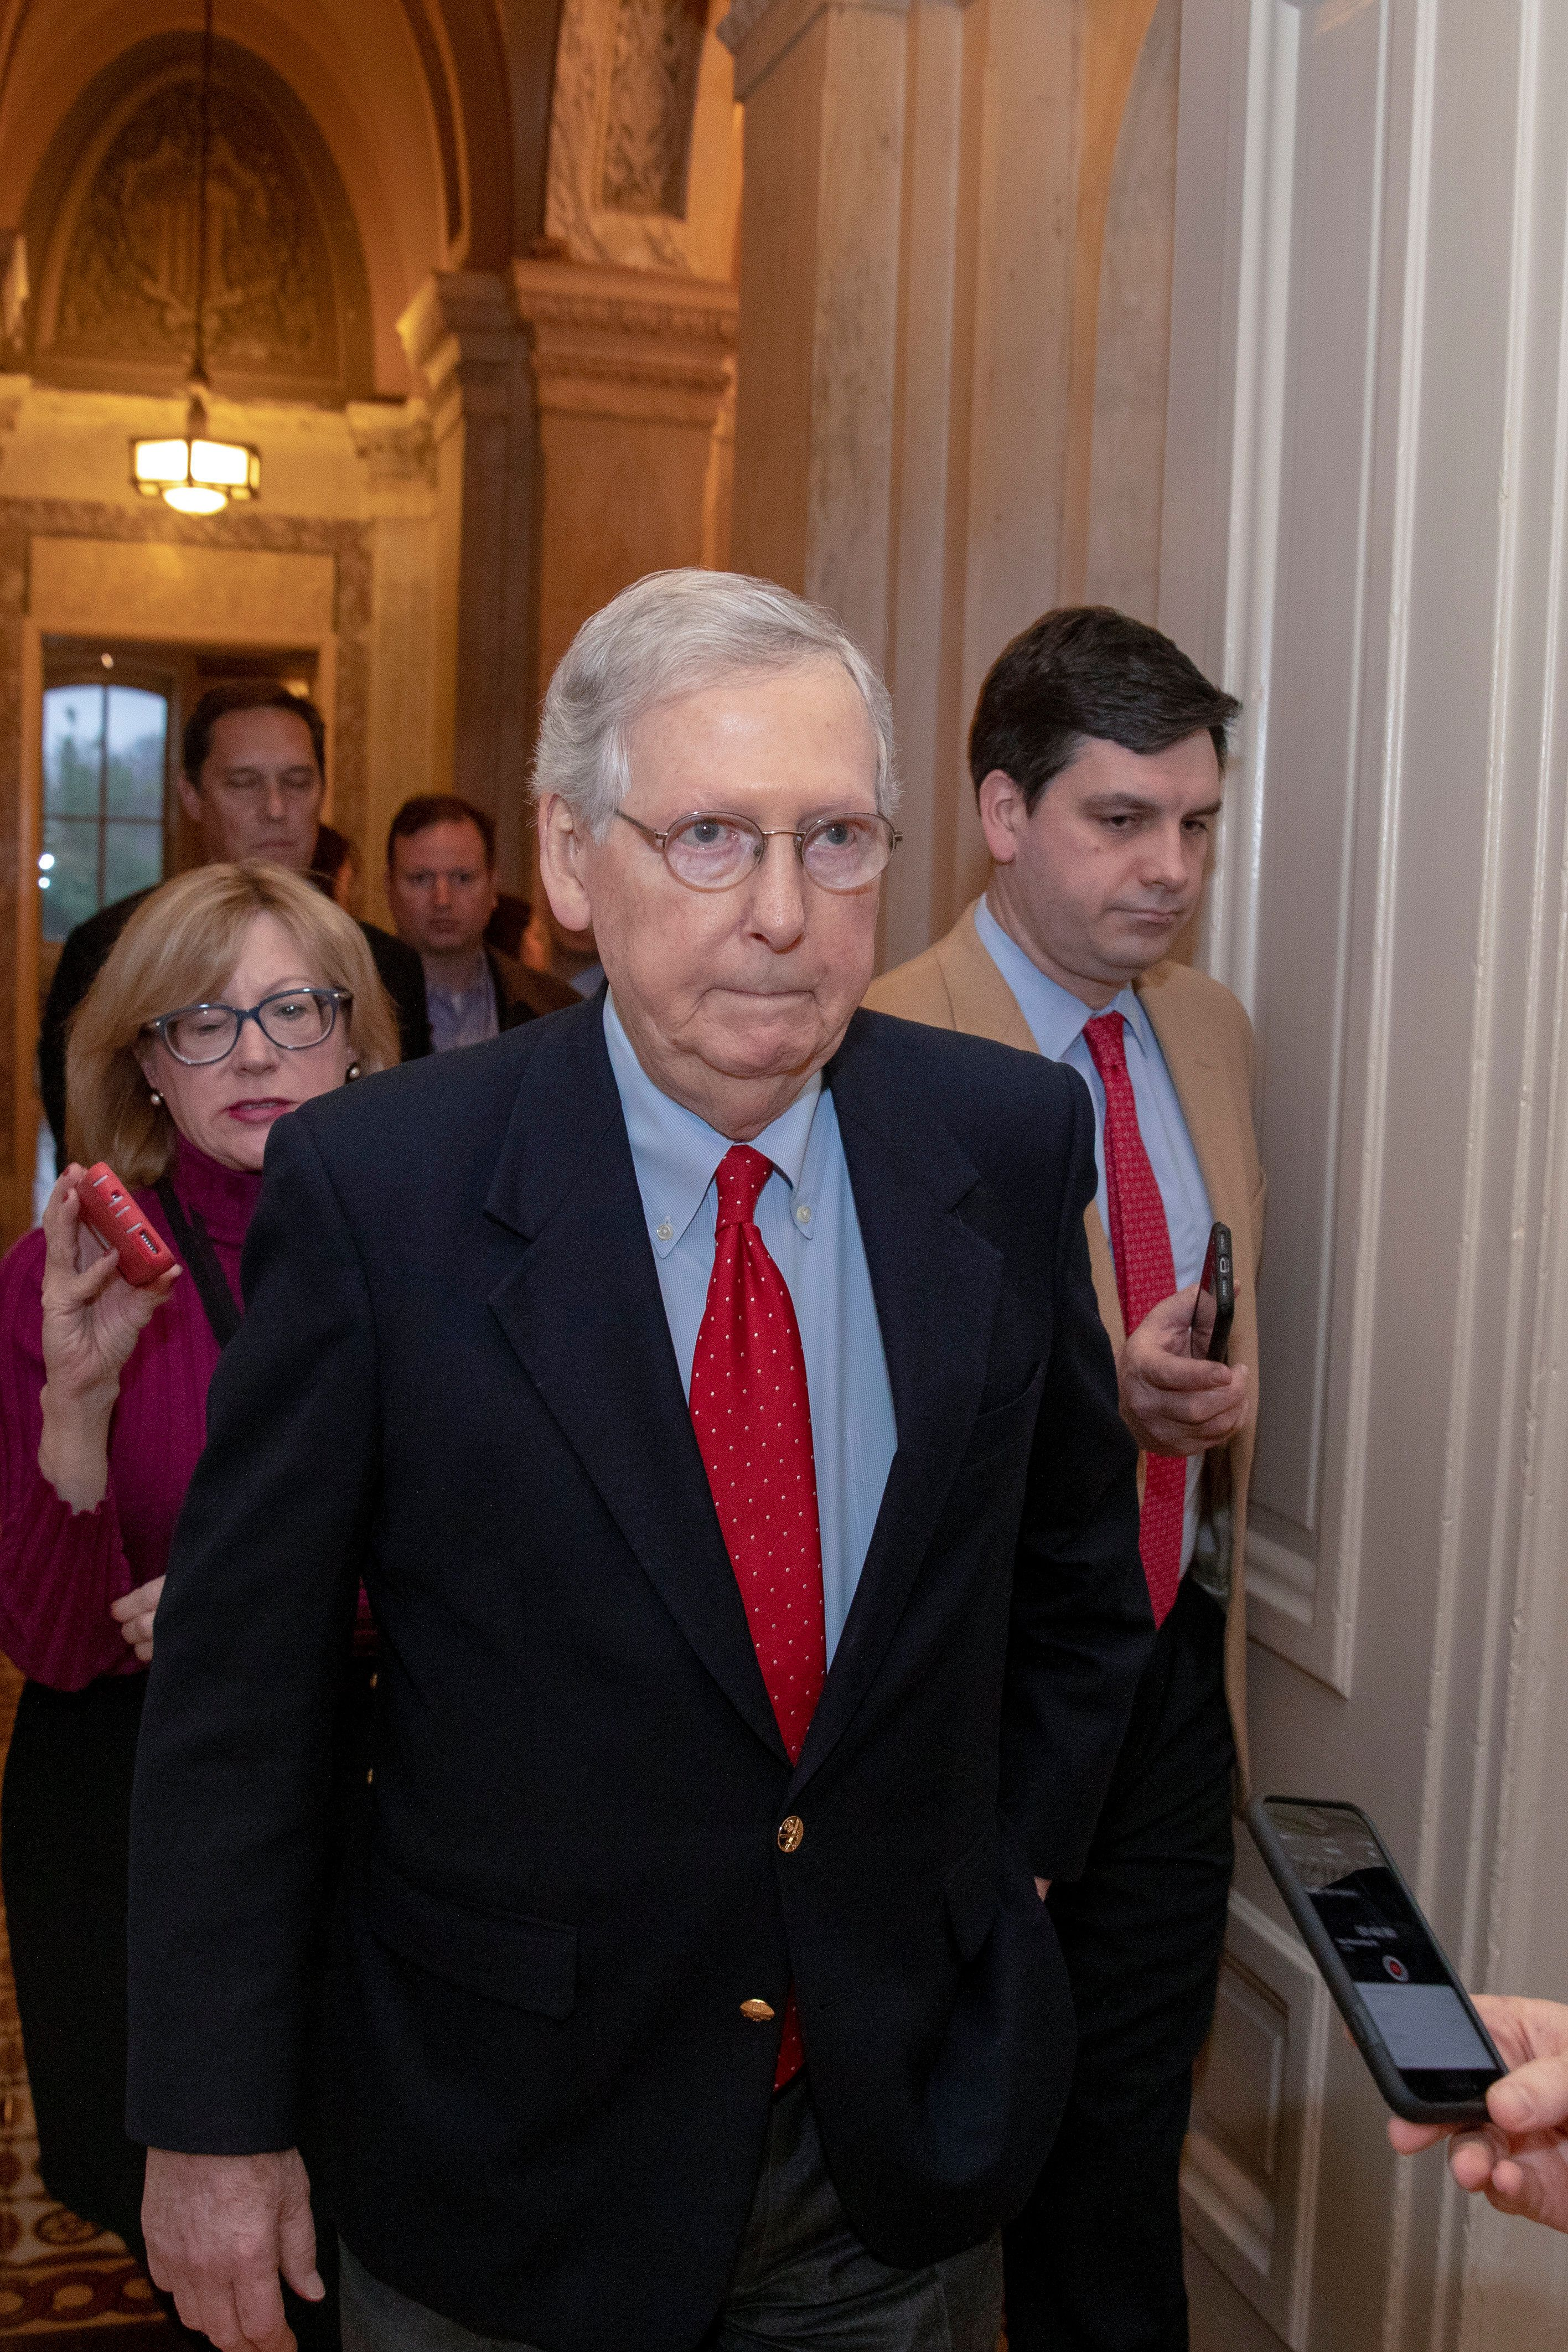 WASHINGTON, DC - JANUARY 02: Senate Majority Leader Mitch McConnell, (R-KY) speaks to reporters on Capitol Hill after returning from the White House on January 02, 2019 in Washington, DC. With the new congress scheduled to start on January 3, 2019, Congressional Democrats and Republicans have not come to a bipartisan solution to President Donald Trump's demands for more money to build a wall along the U.S.-Mexico border. (Photo by Tasos Katopodis/Getty Images)